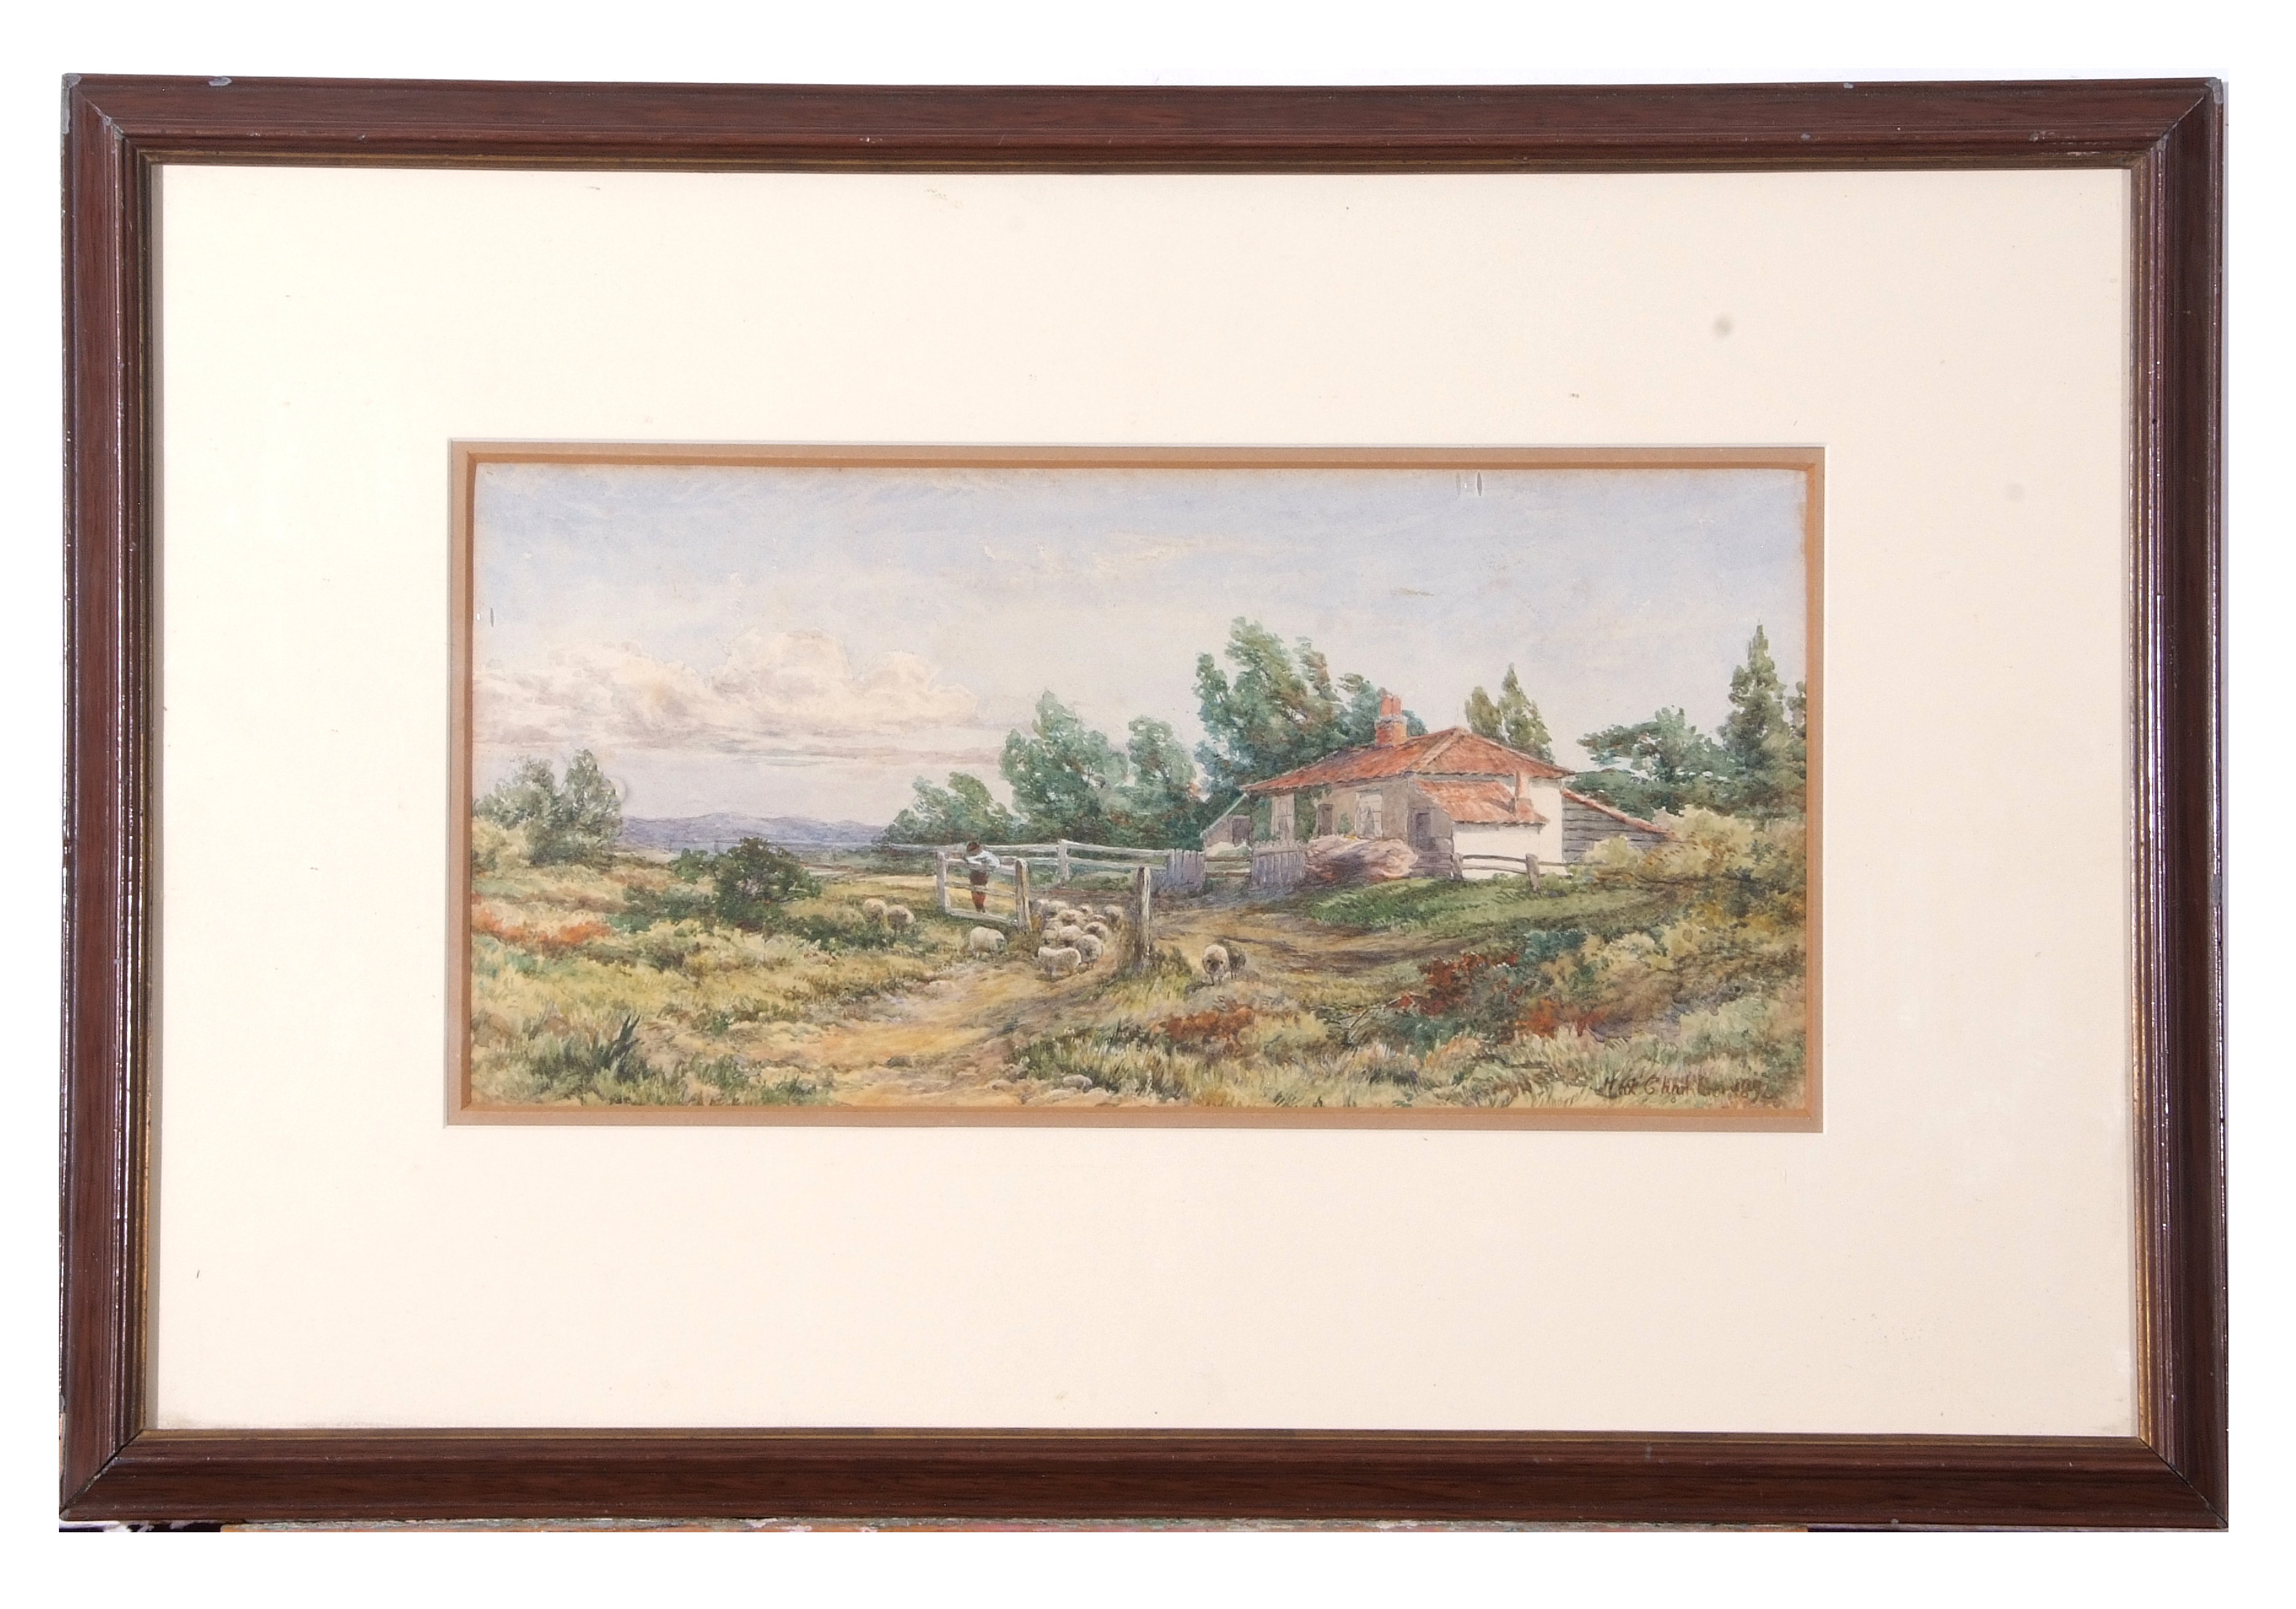 Max Chambers, signed, dated 1892, Cottage and sheep in extensive landscape, 19 x 39cm